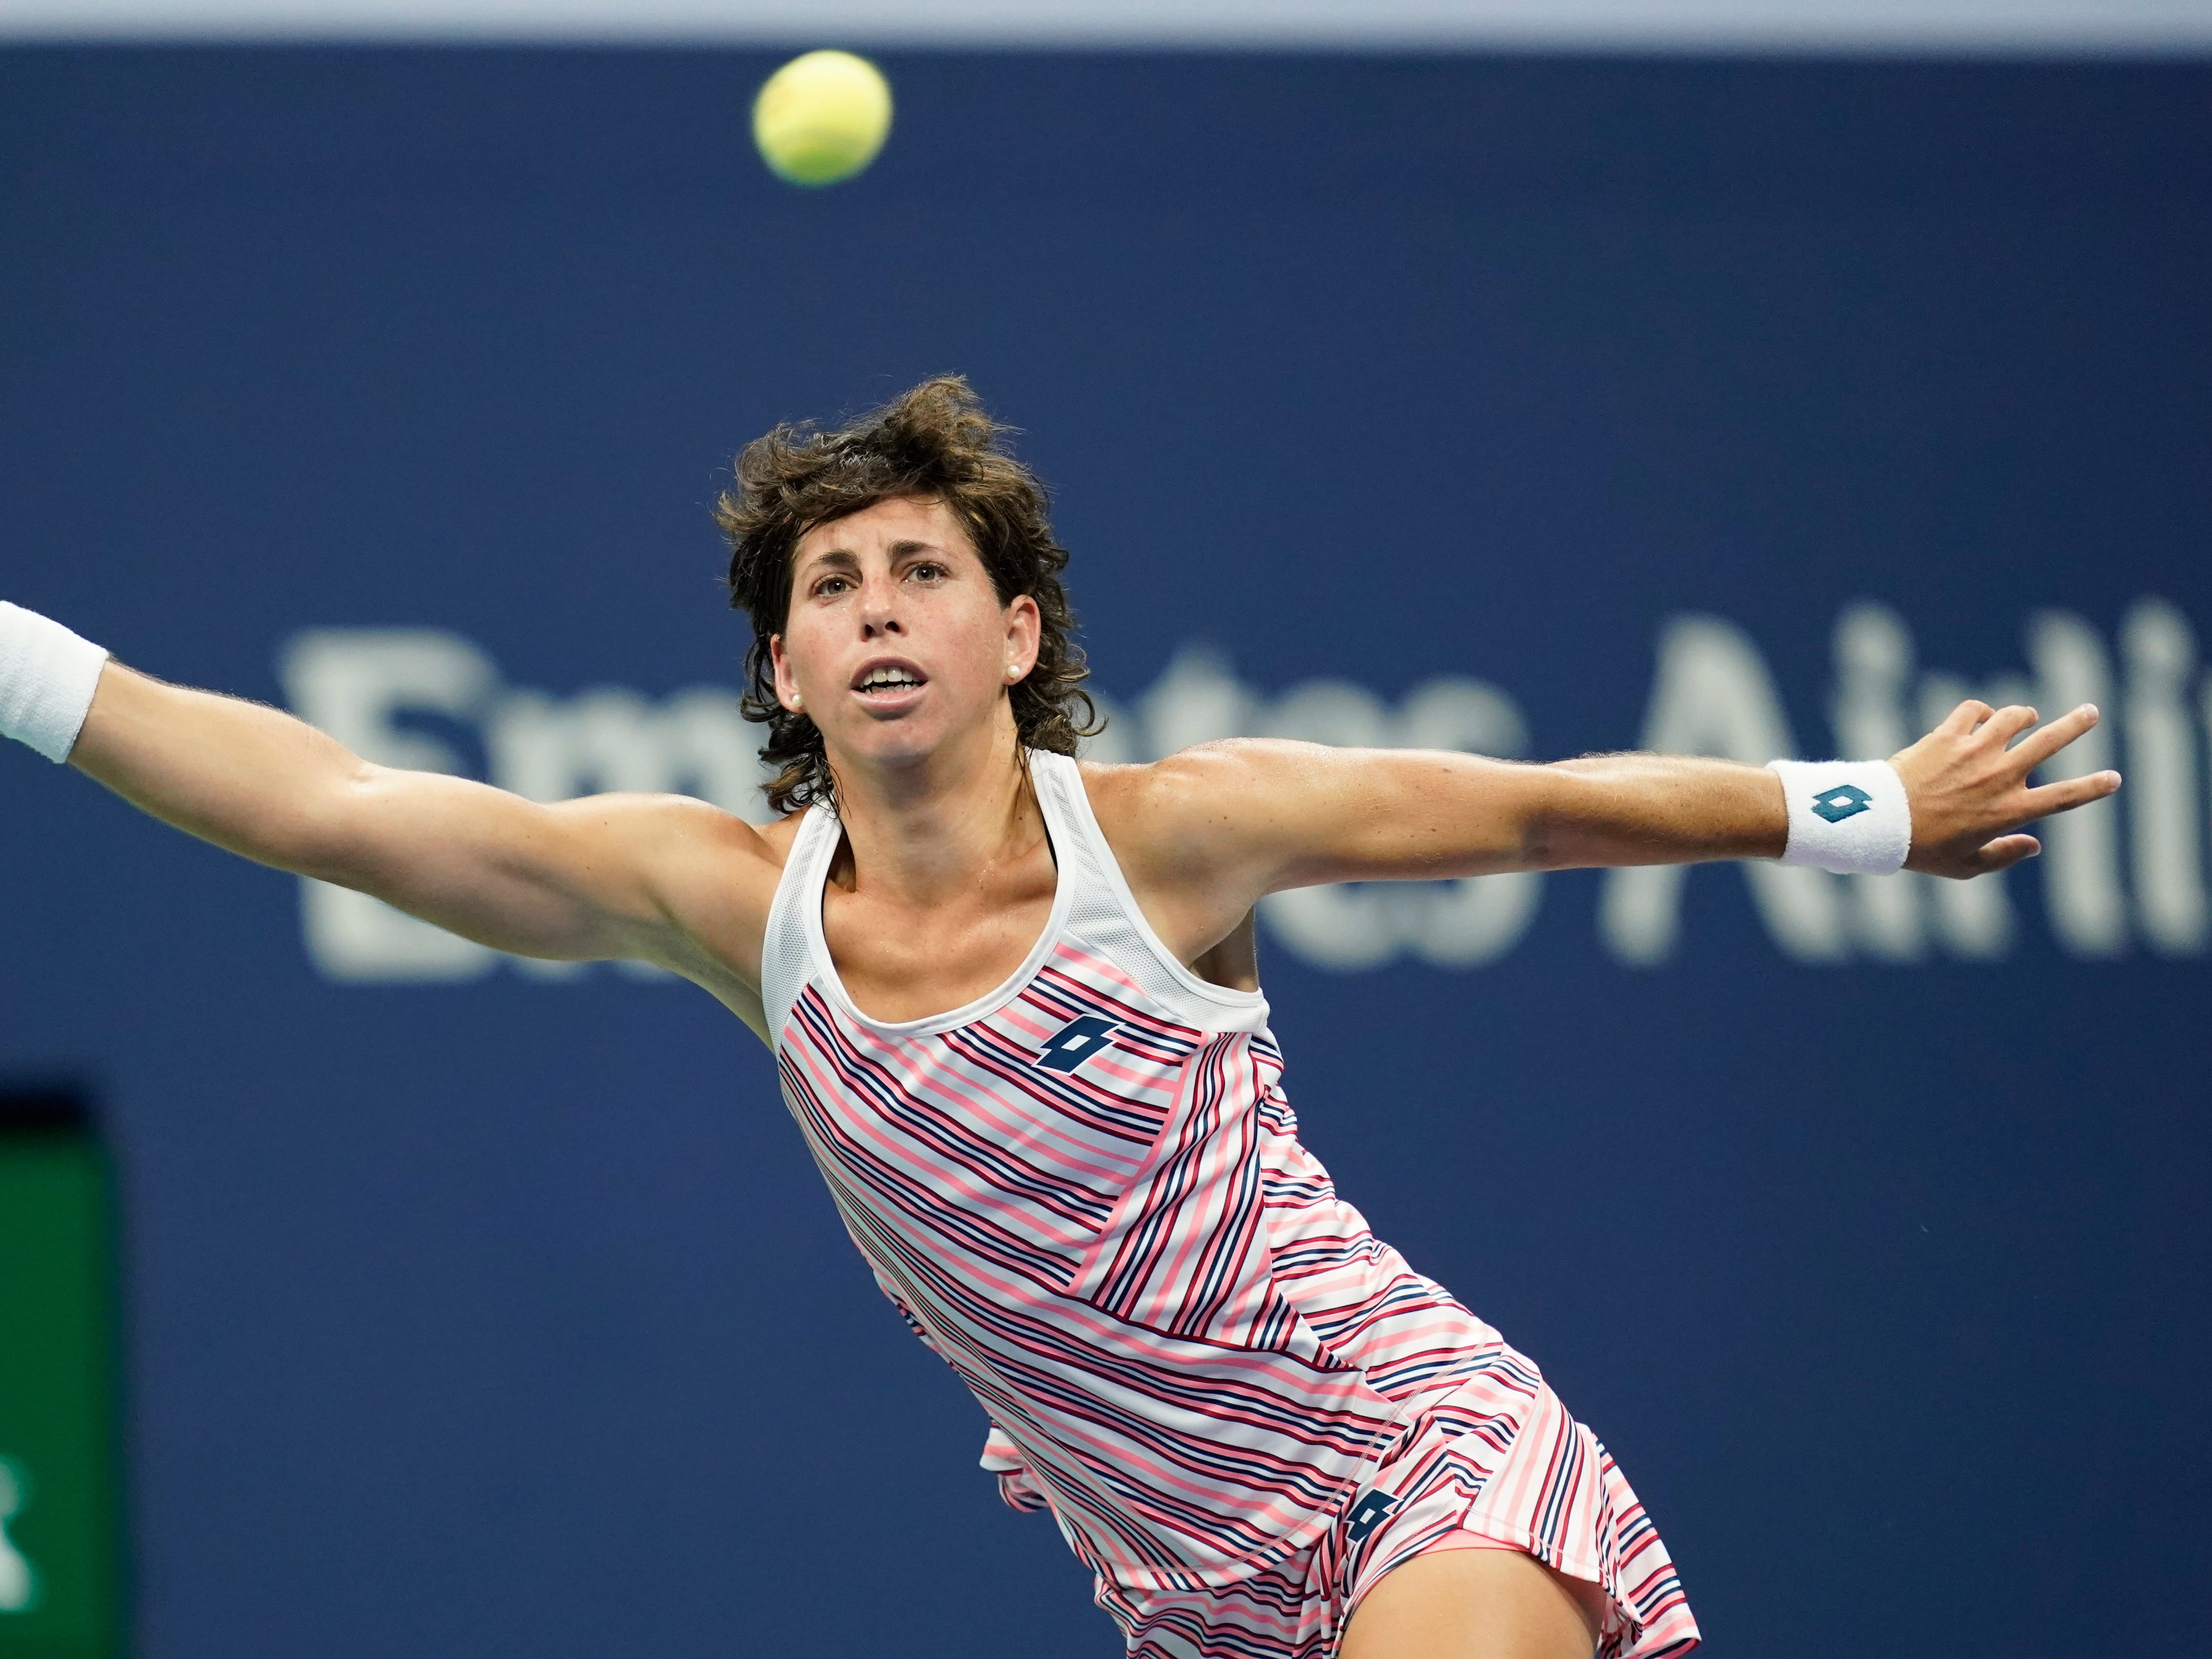 Spain's Carla Suarez Navarro stretches to hit a return to the USA's Madison Keys during their quarterfinal match.